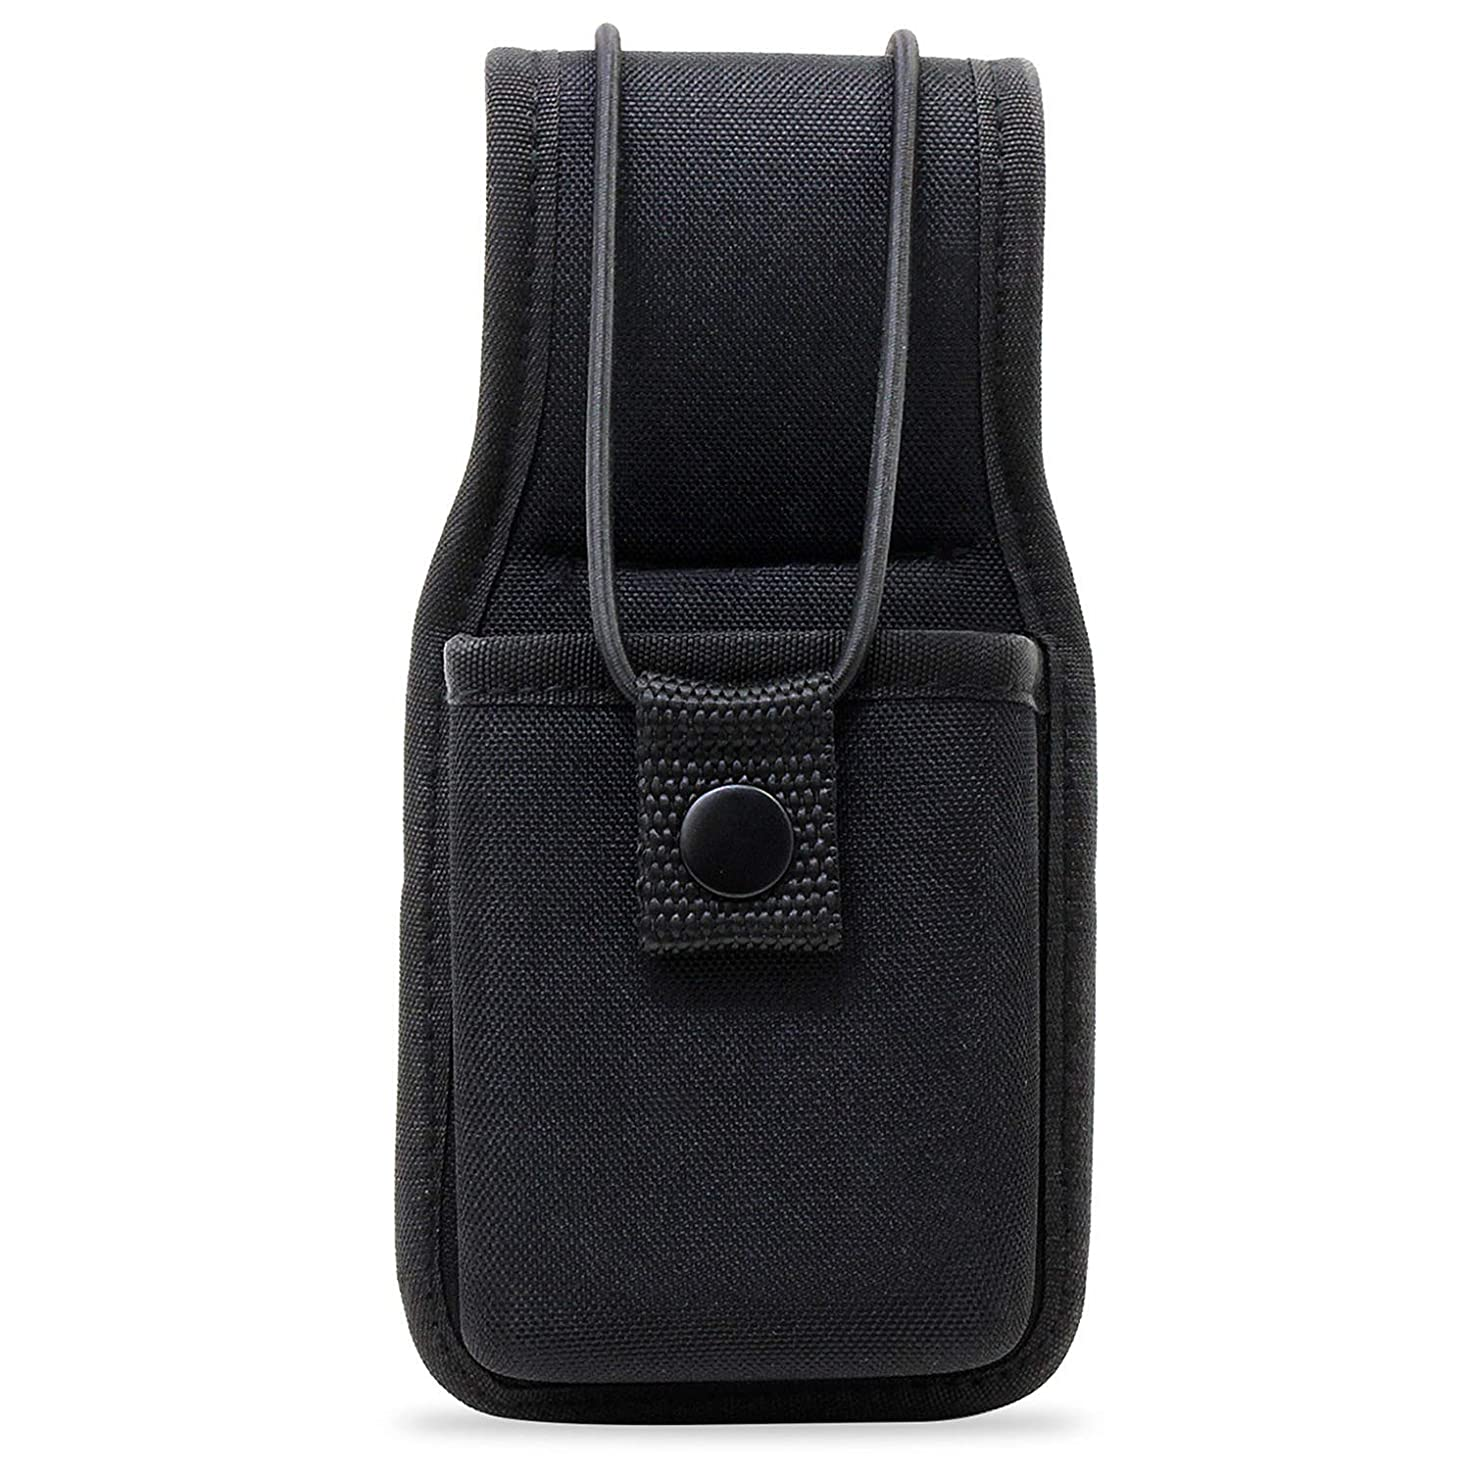 abcGoodefg Universal Nylon Radio Case Holder Holster Pouch Bag for Two Way Radios Walkie Talkies 97mm x 77mm x 45mm